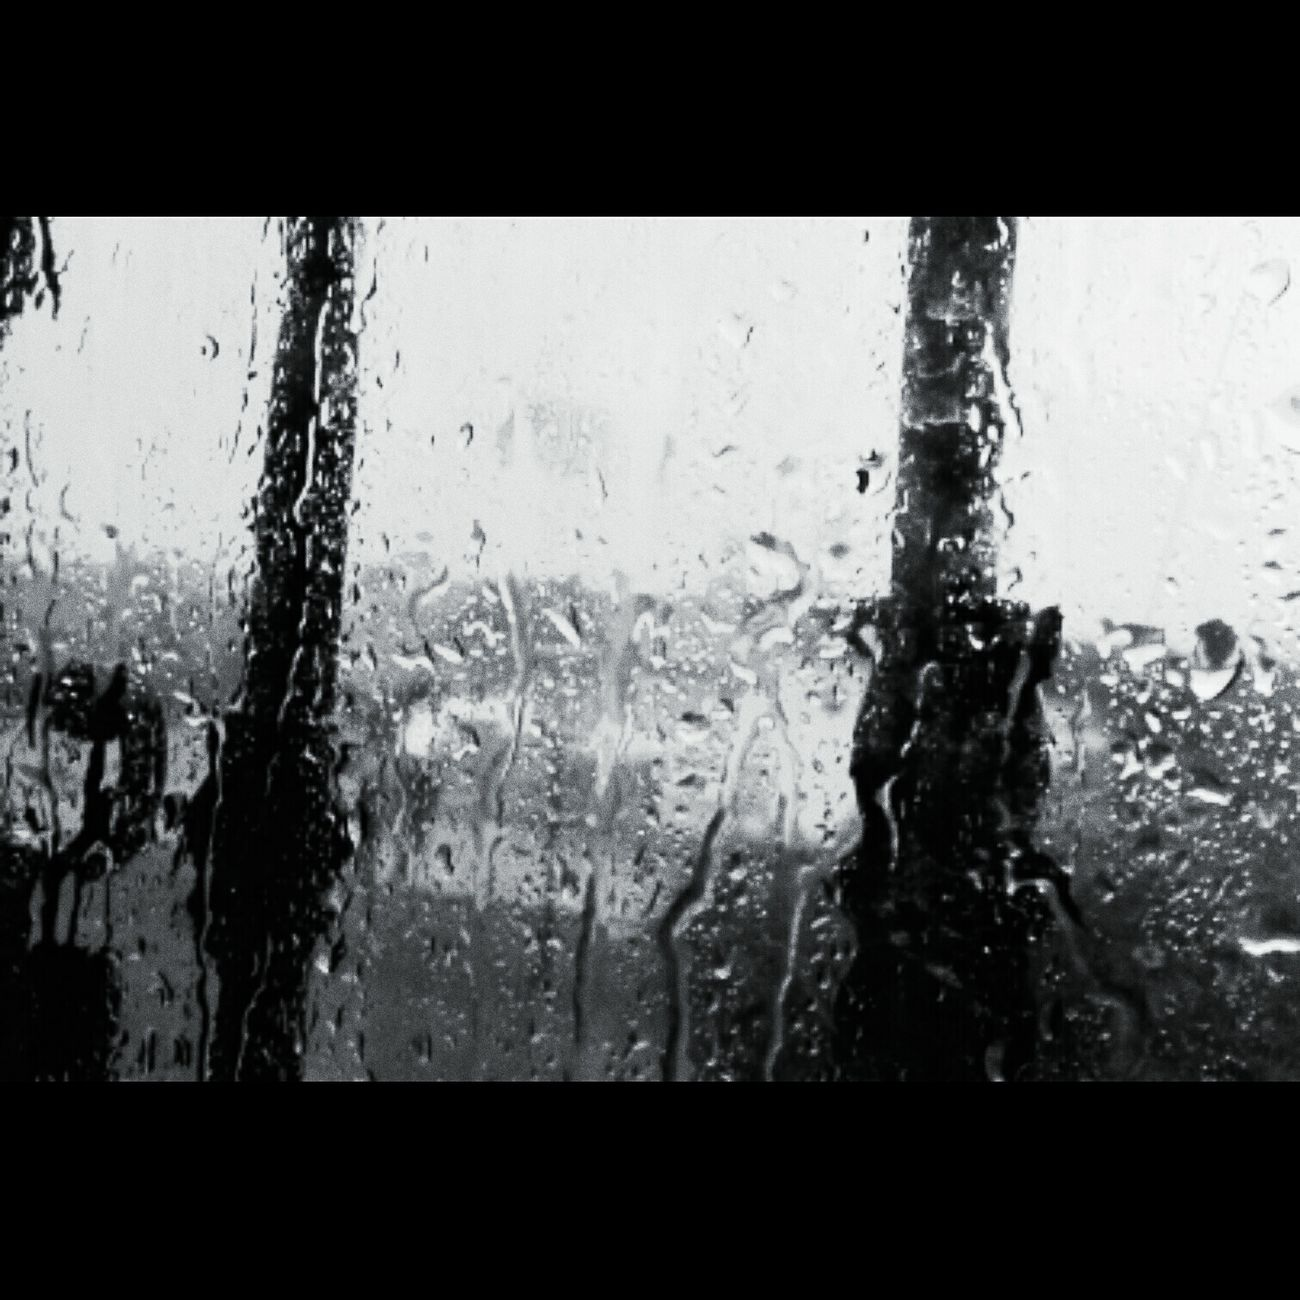 Glass - Material Transparent Window Weather Rain Sky Water Wet Drop Backgrounds Full Frame Car Wash Day No People Tree Indoors  RainDrop Nature Close-up CALI COLOMBIA Rainy Days Picoftheday Love Photography People Photography